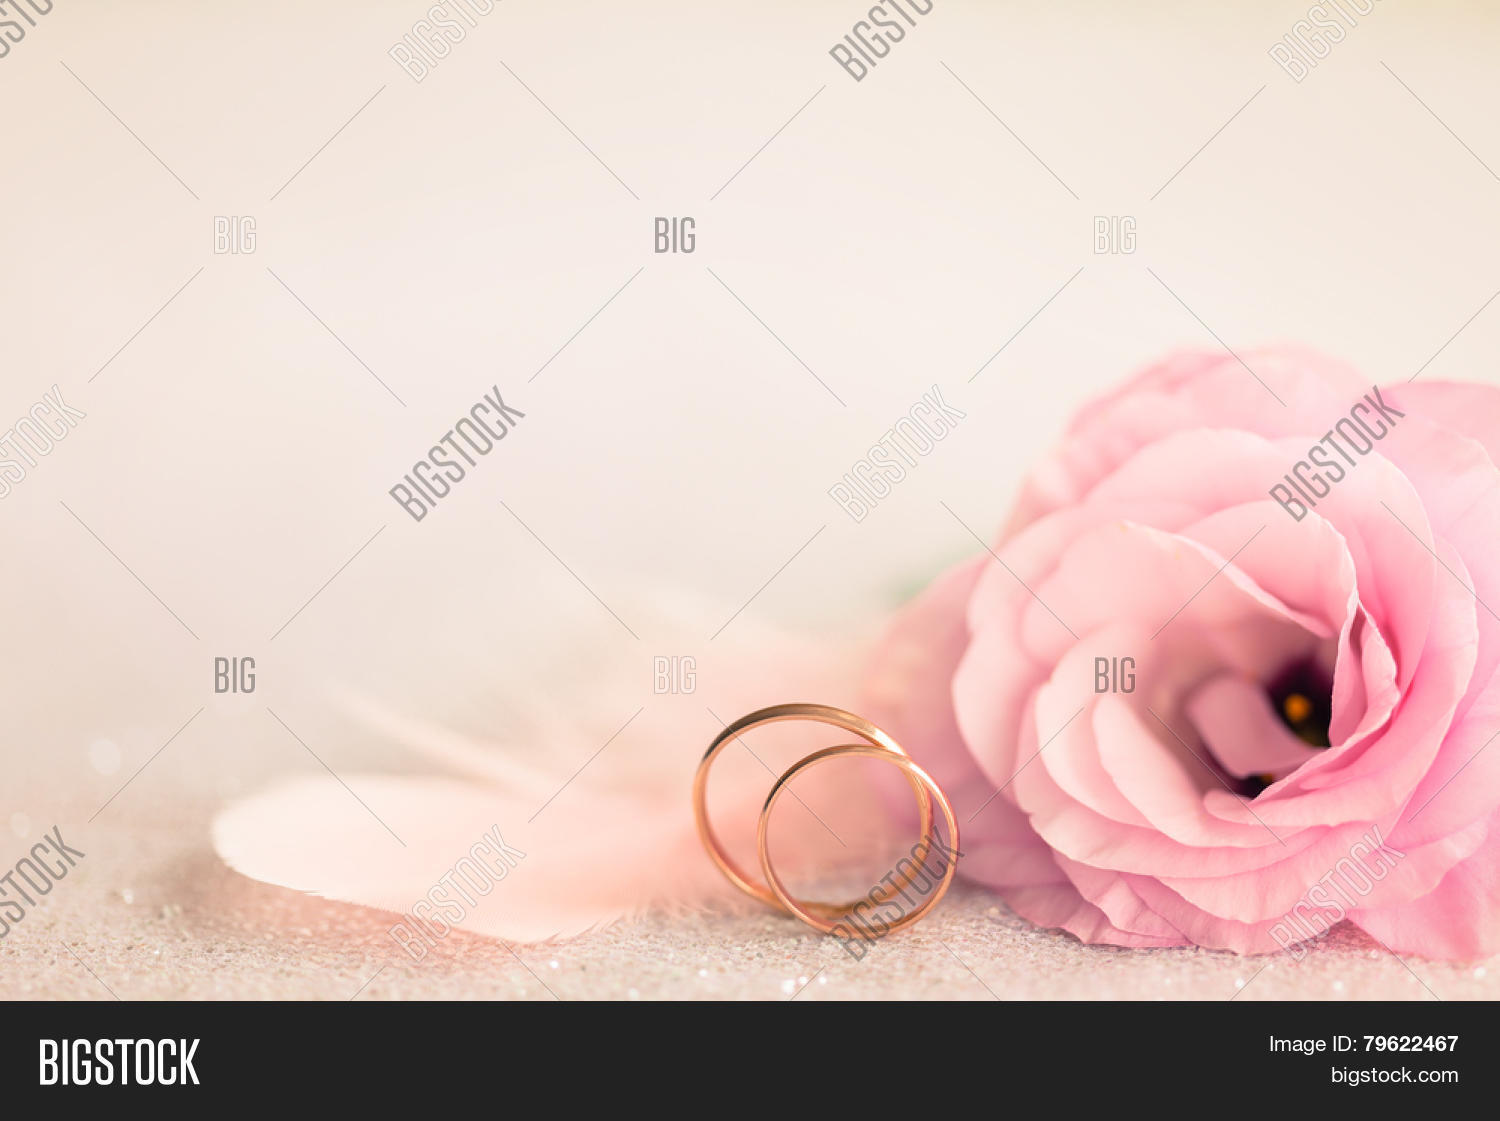 Wedding Background Image & Photo (Free Trial) | Bigstock